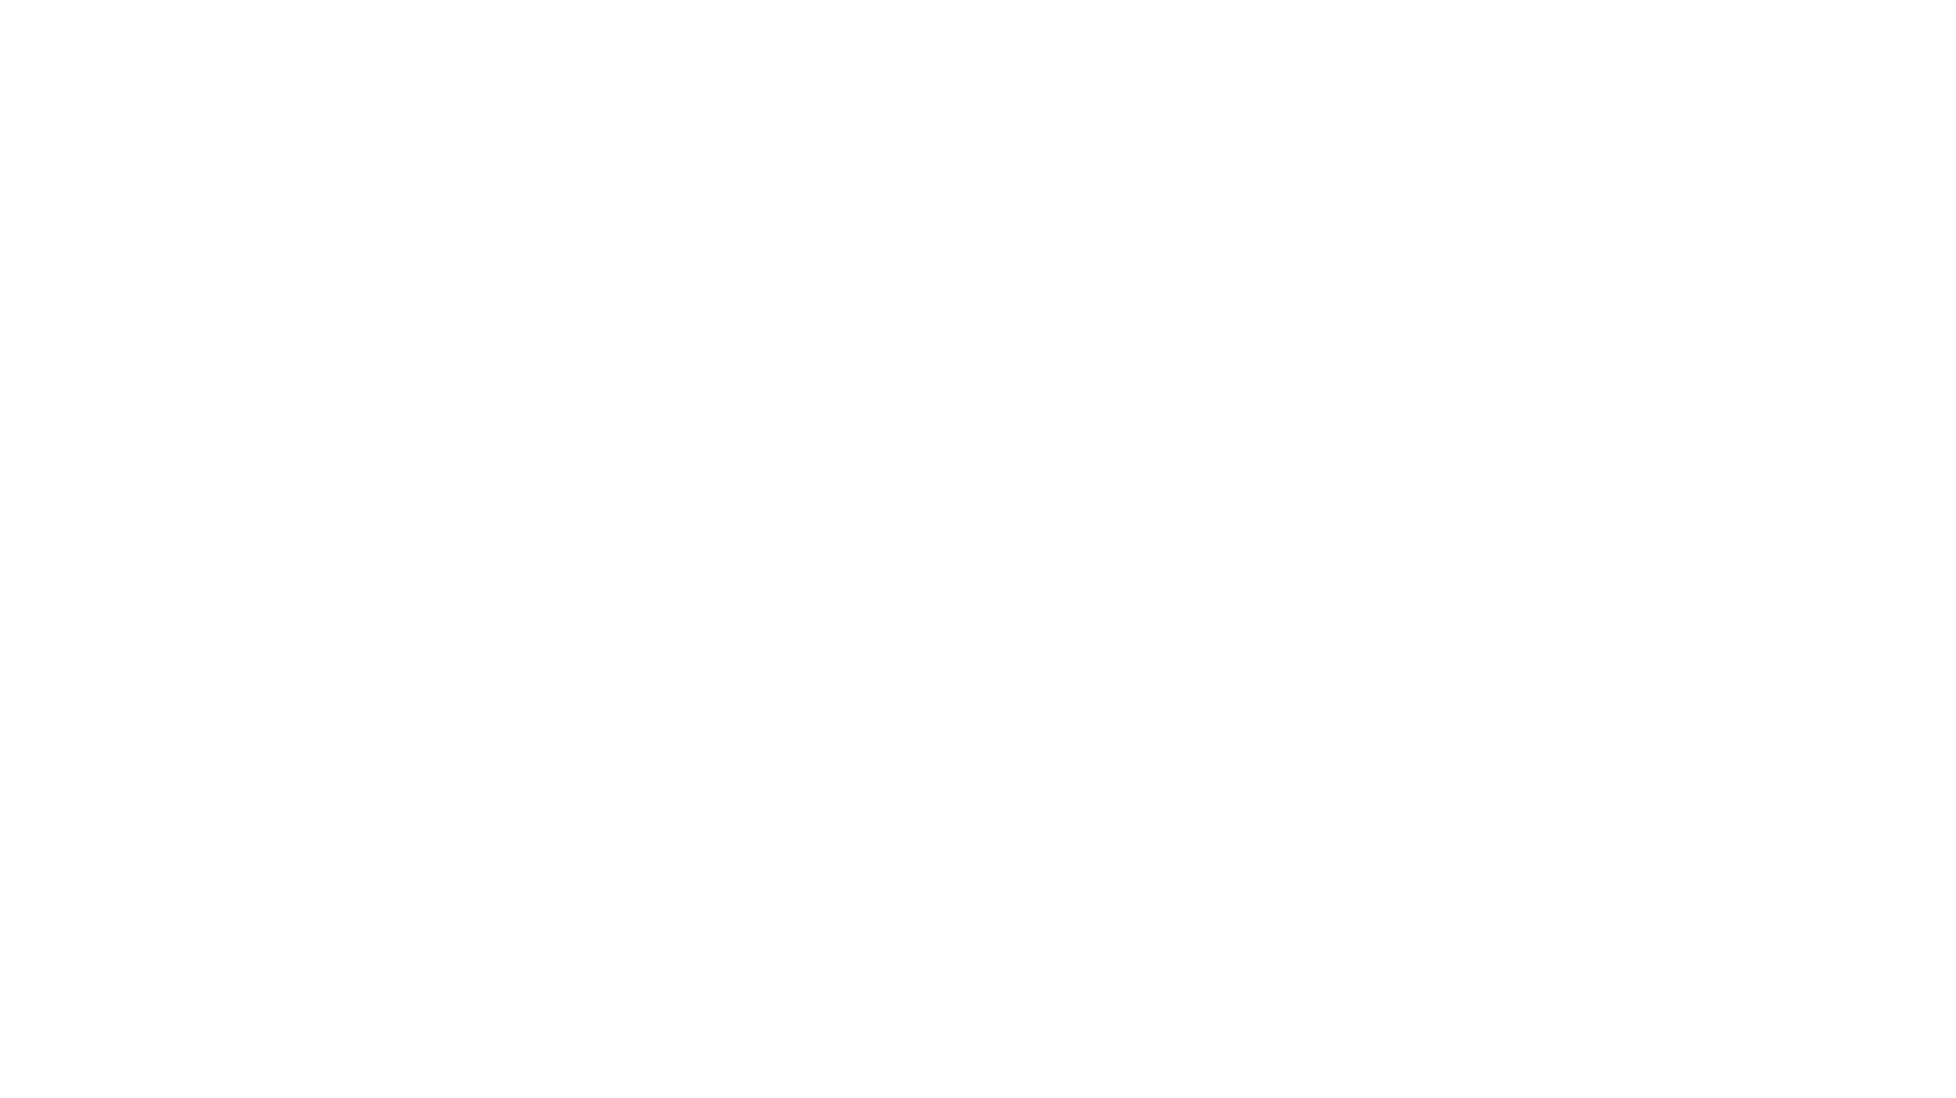 SPRING-READY DRESSES - SHOP THEM ALL